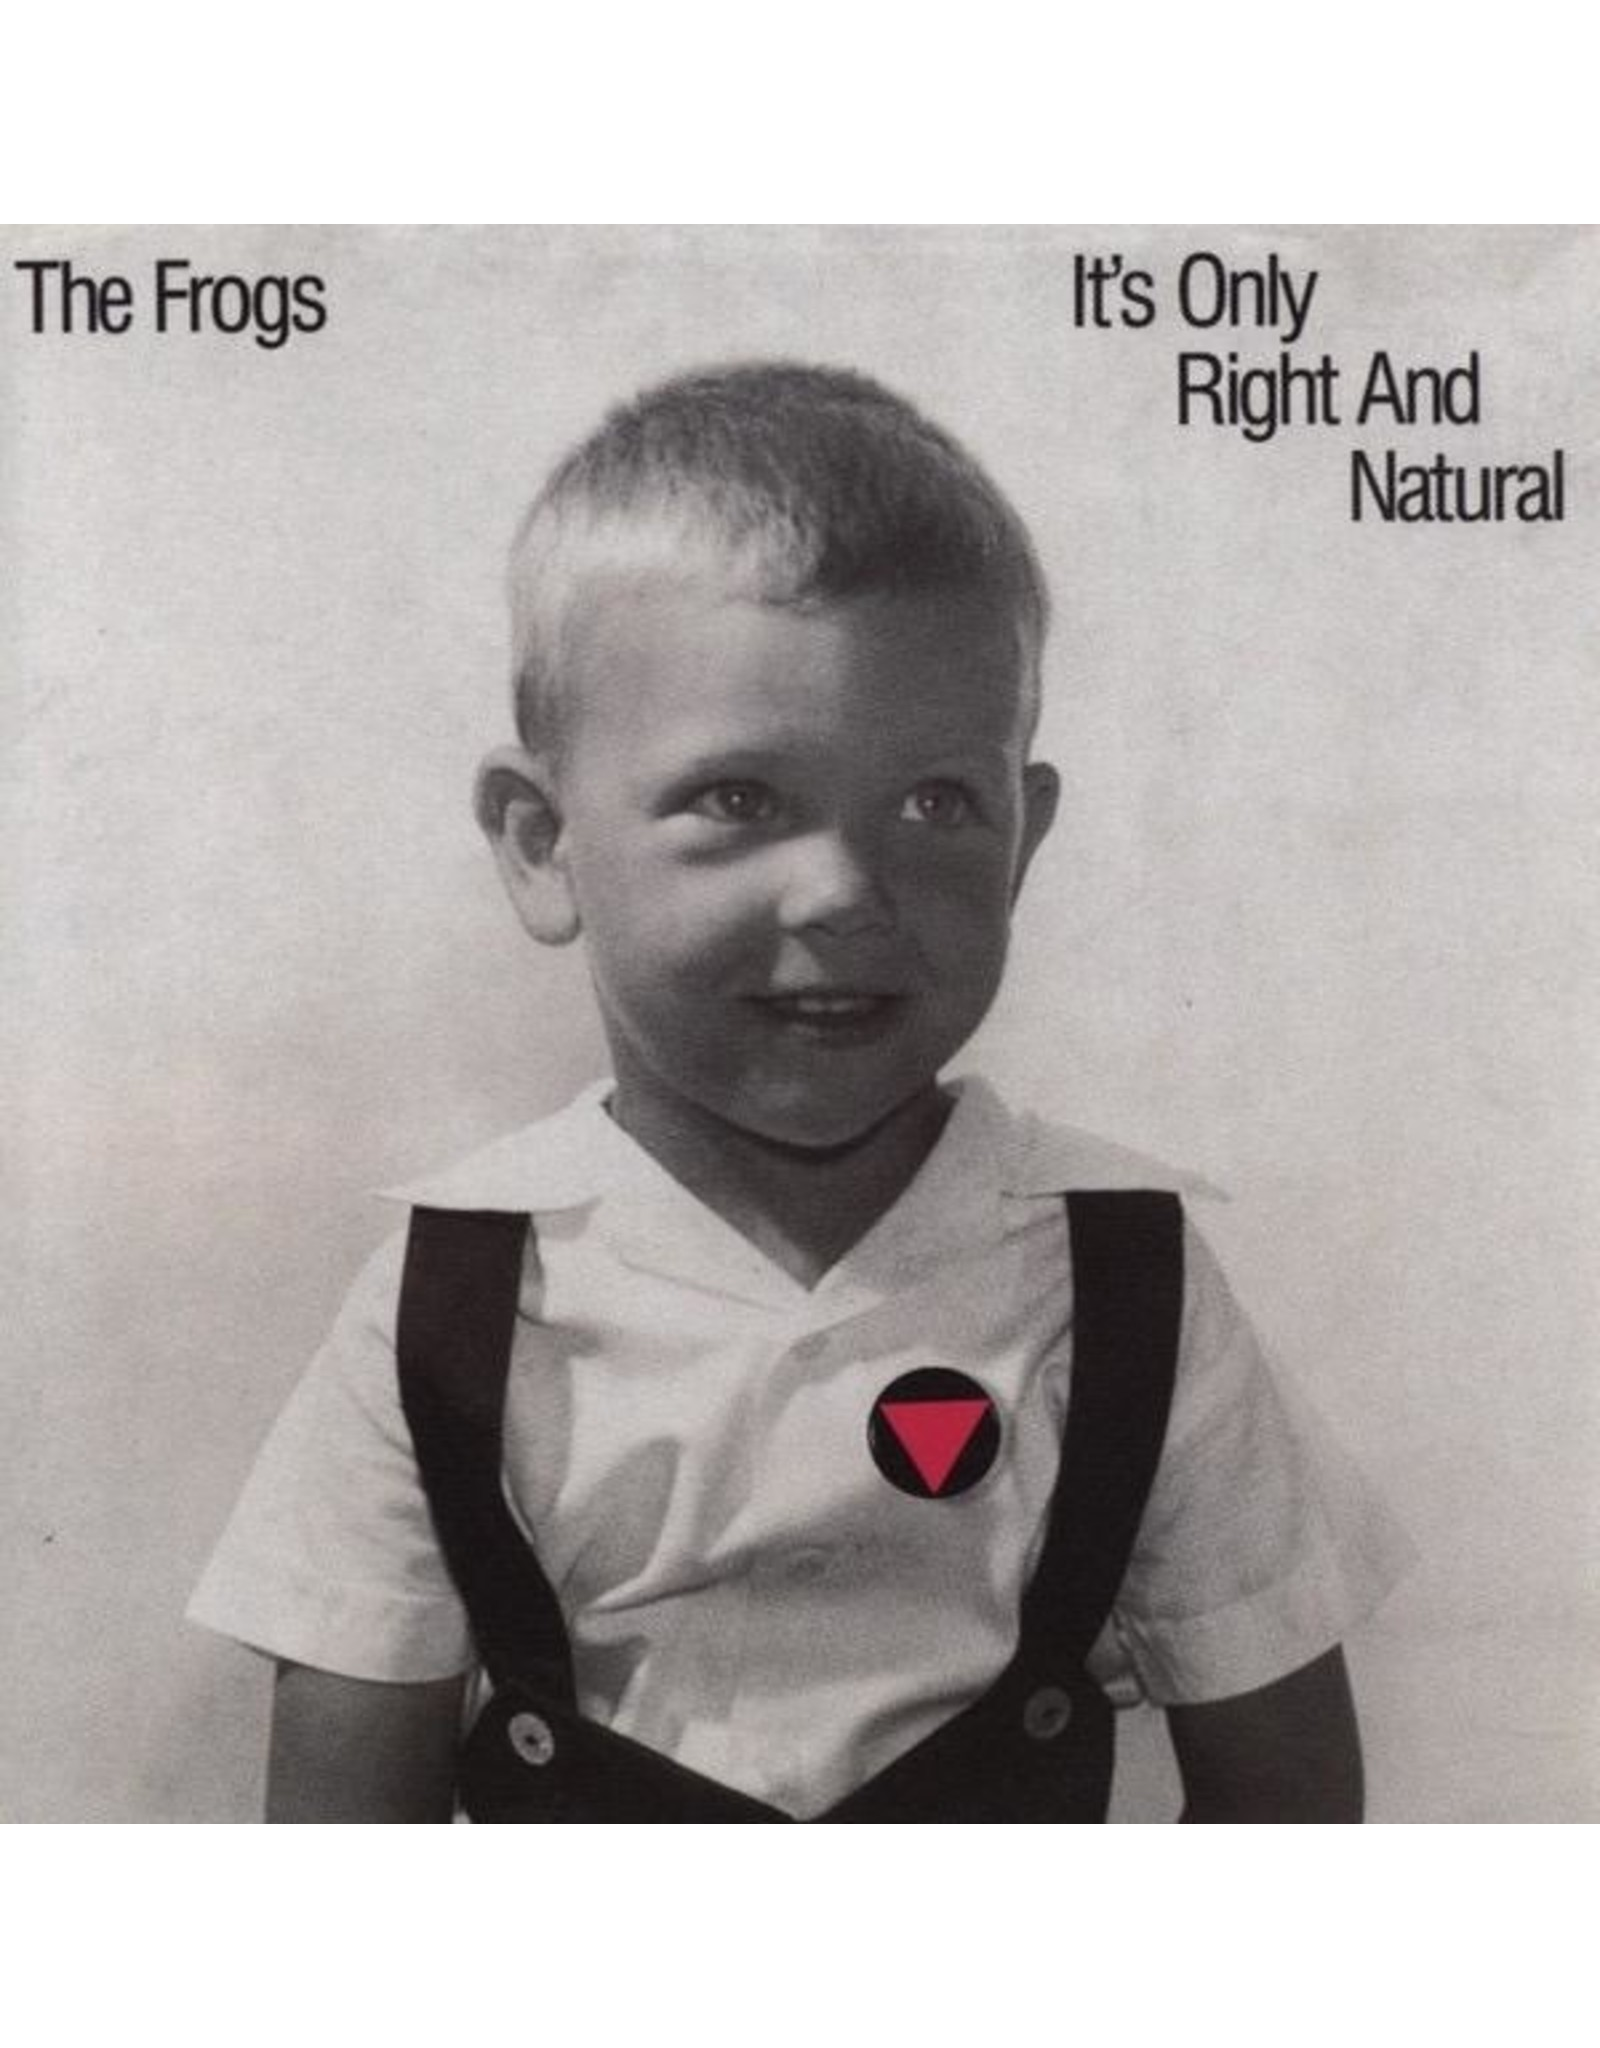 New Vinyl The Frogs - It's Only Right And Natural LP